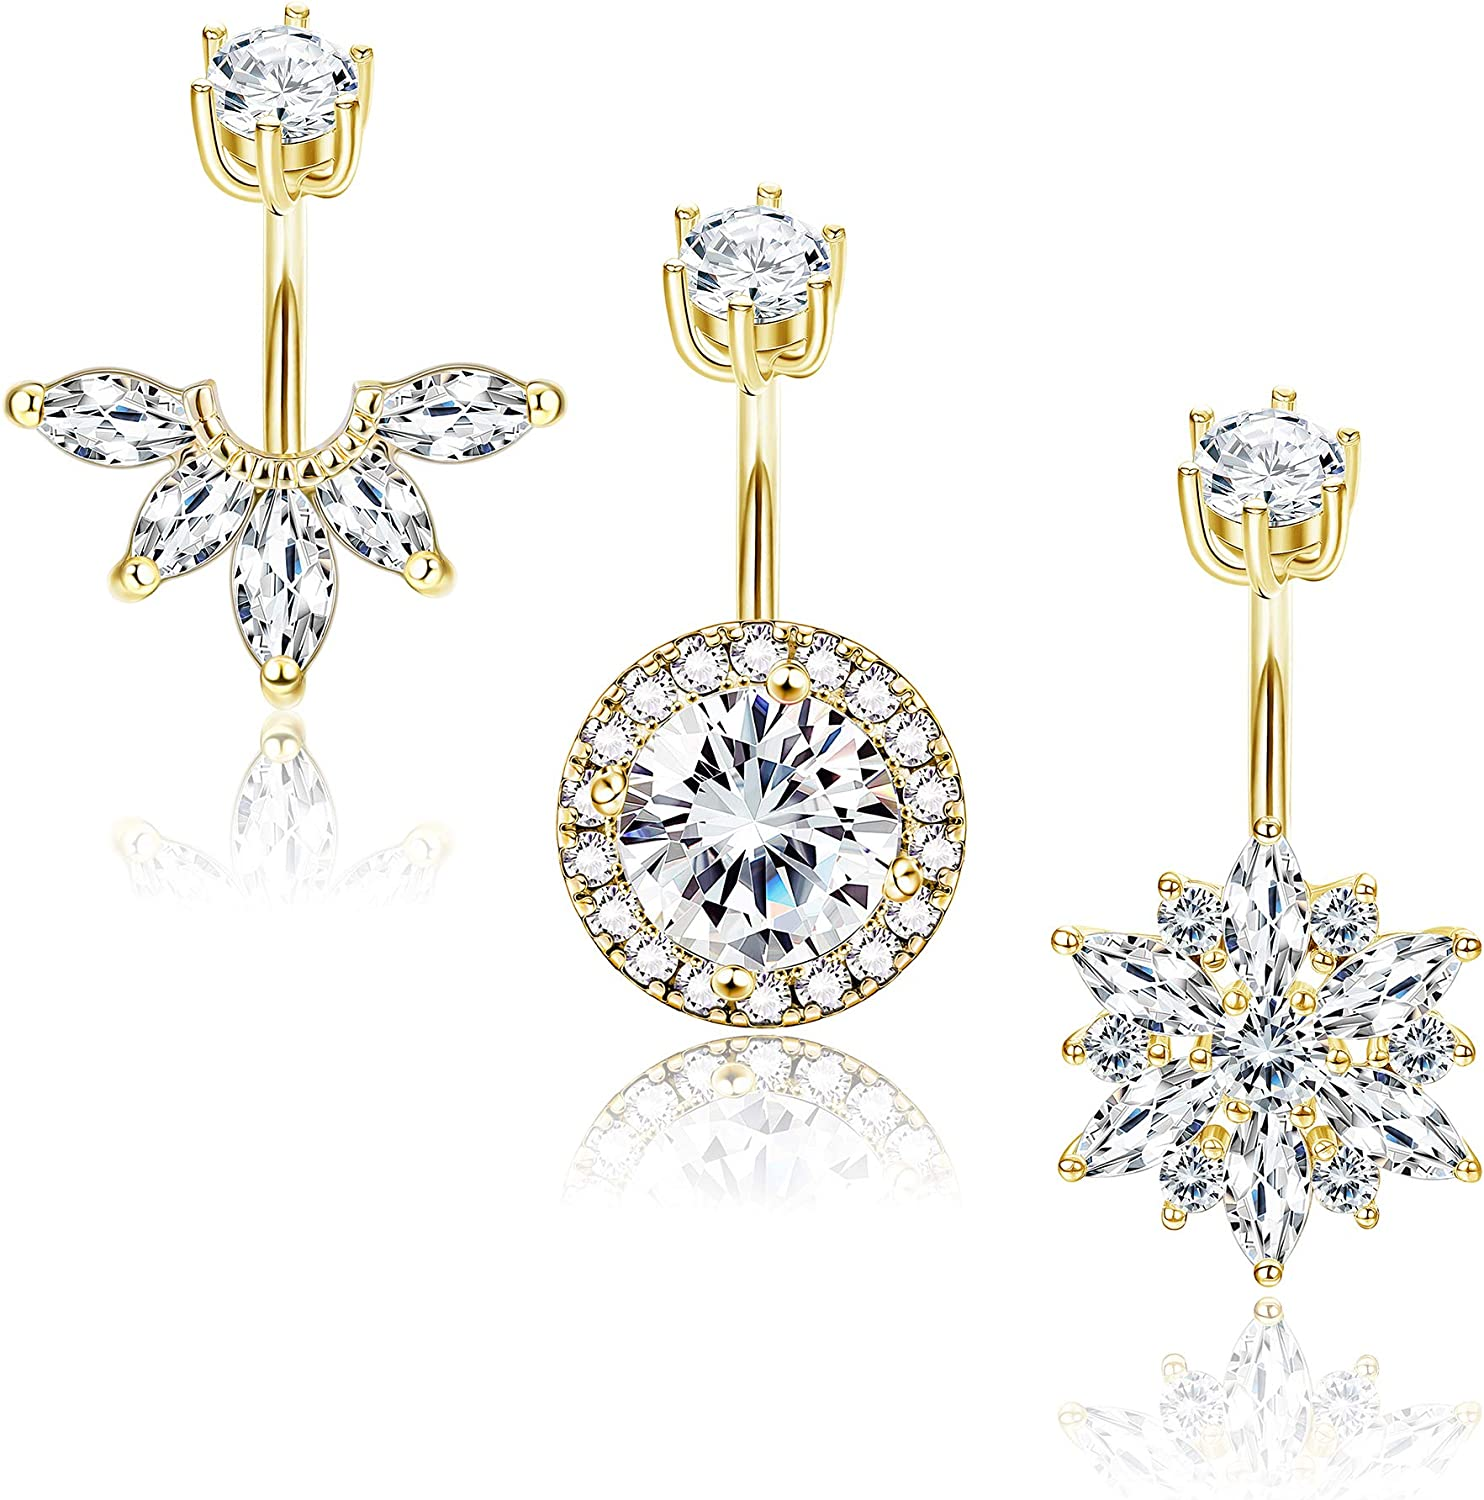 Drperfect 14G CZ Belly Button Rings Belly Rings for Women Stainless Steel Cubic Zirconia Halo Flower Navel Rings Navel Belly Piercing Jewelry